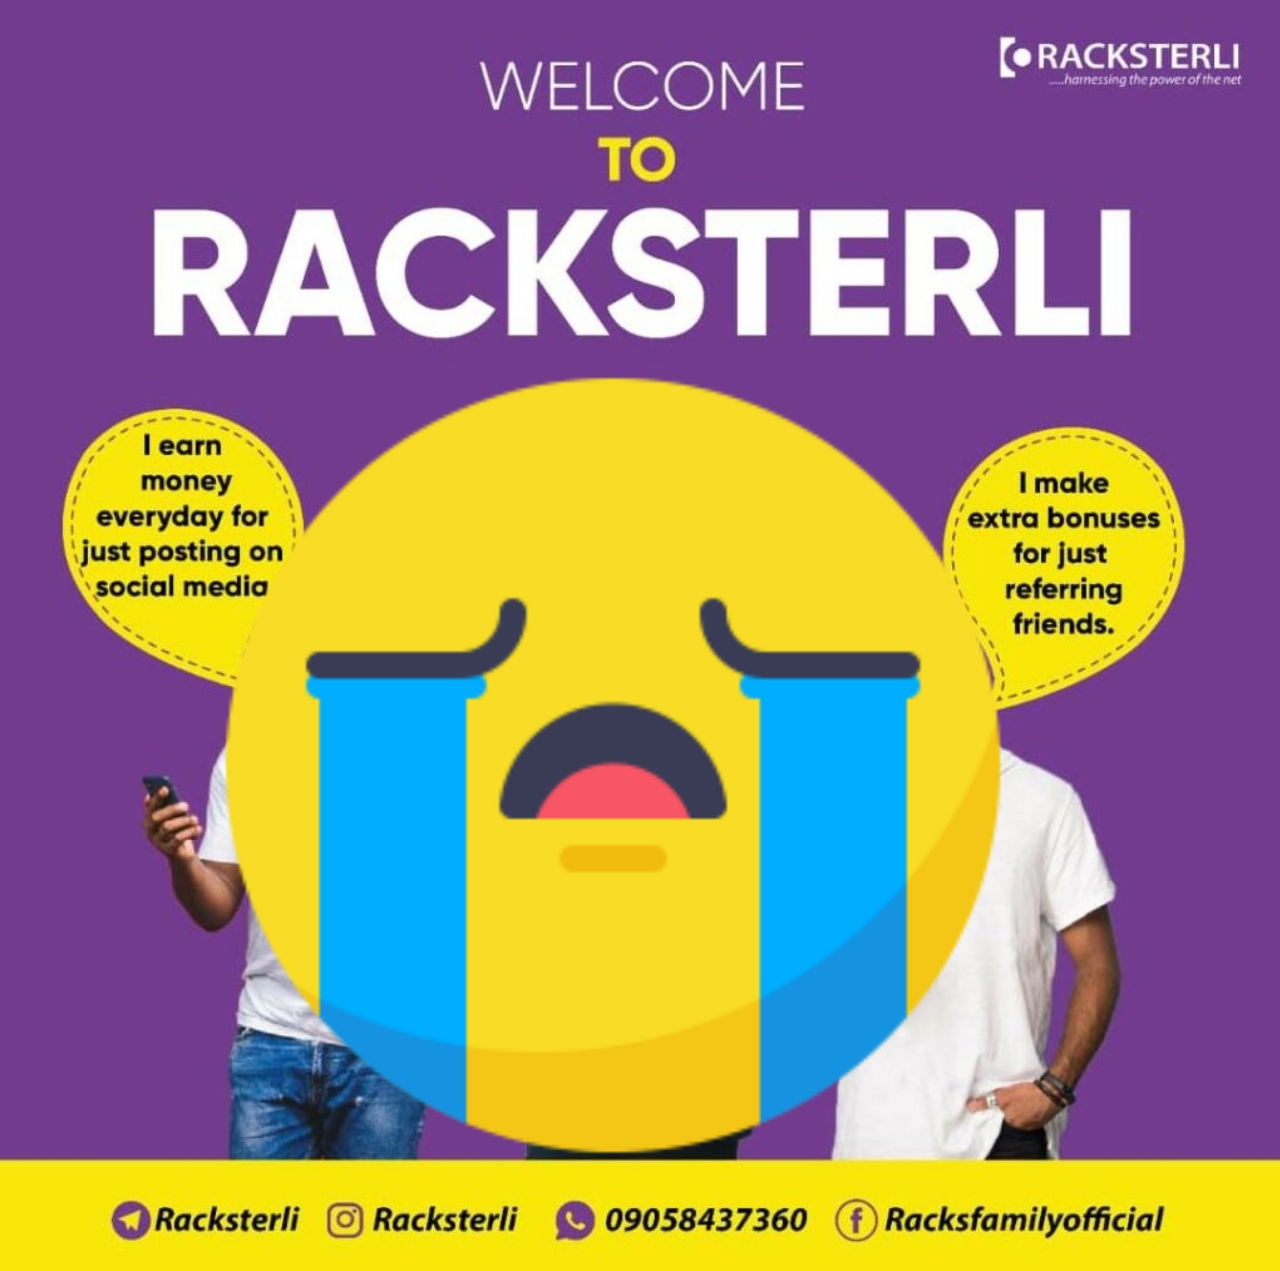 e-choke-racksterli-website-down-for-hours-whats-next-droidvilla-technology-solution-android-apk-phone-reviews-technology-updates-tipstricks